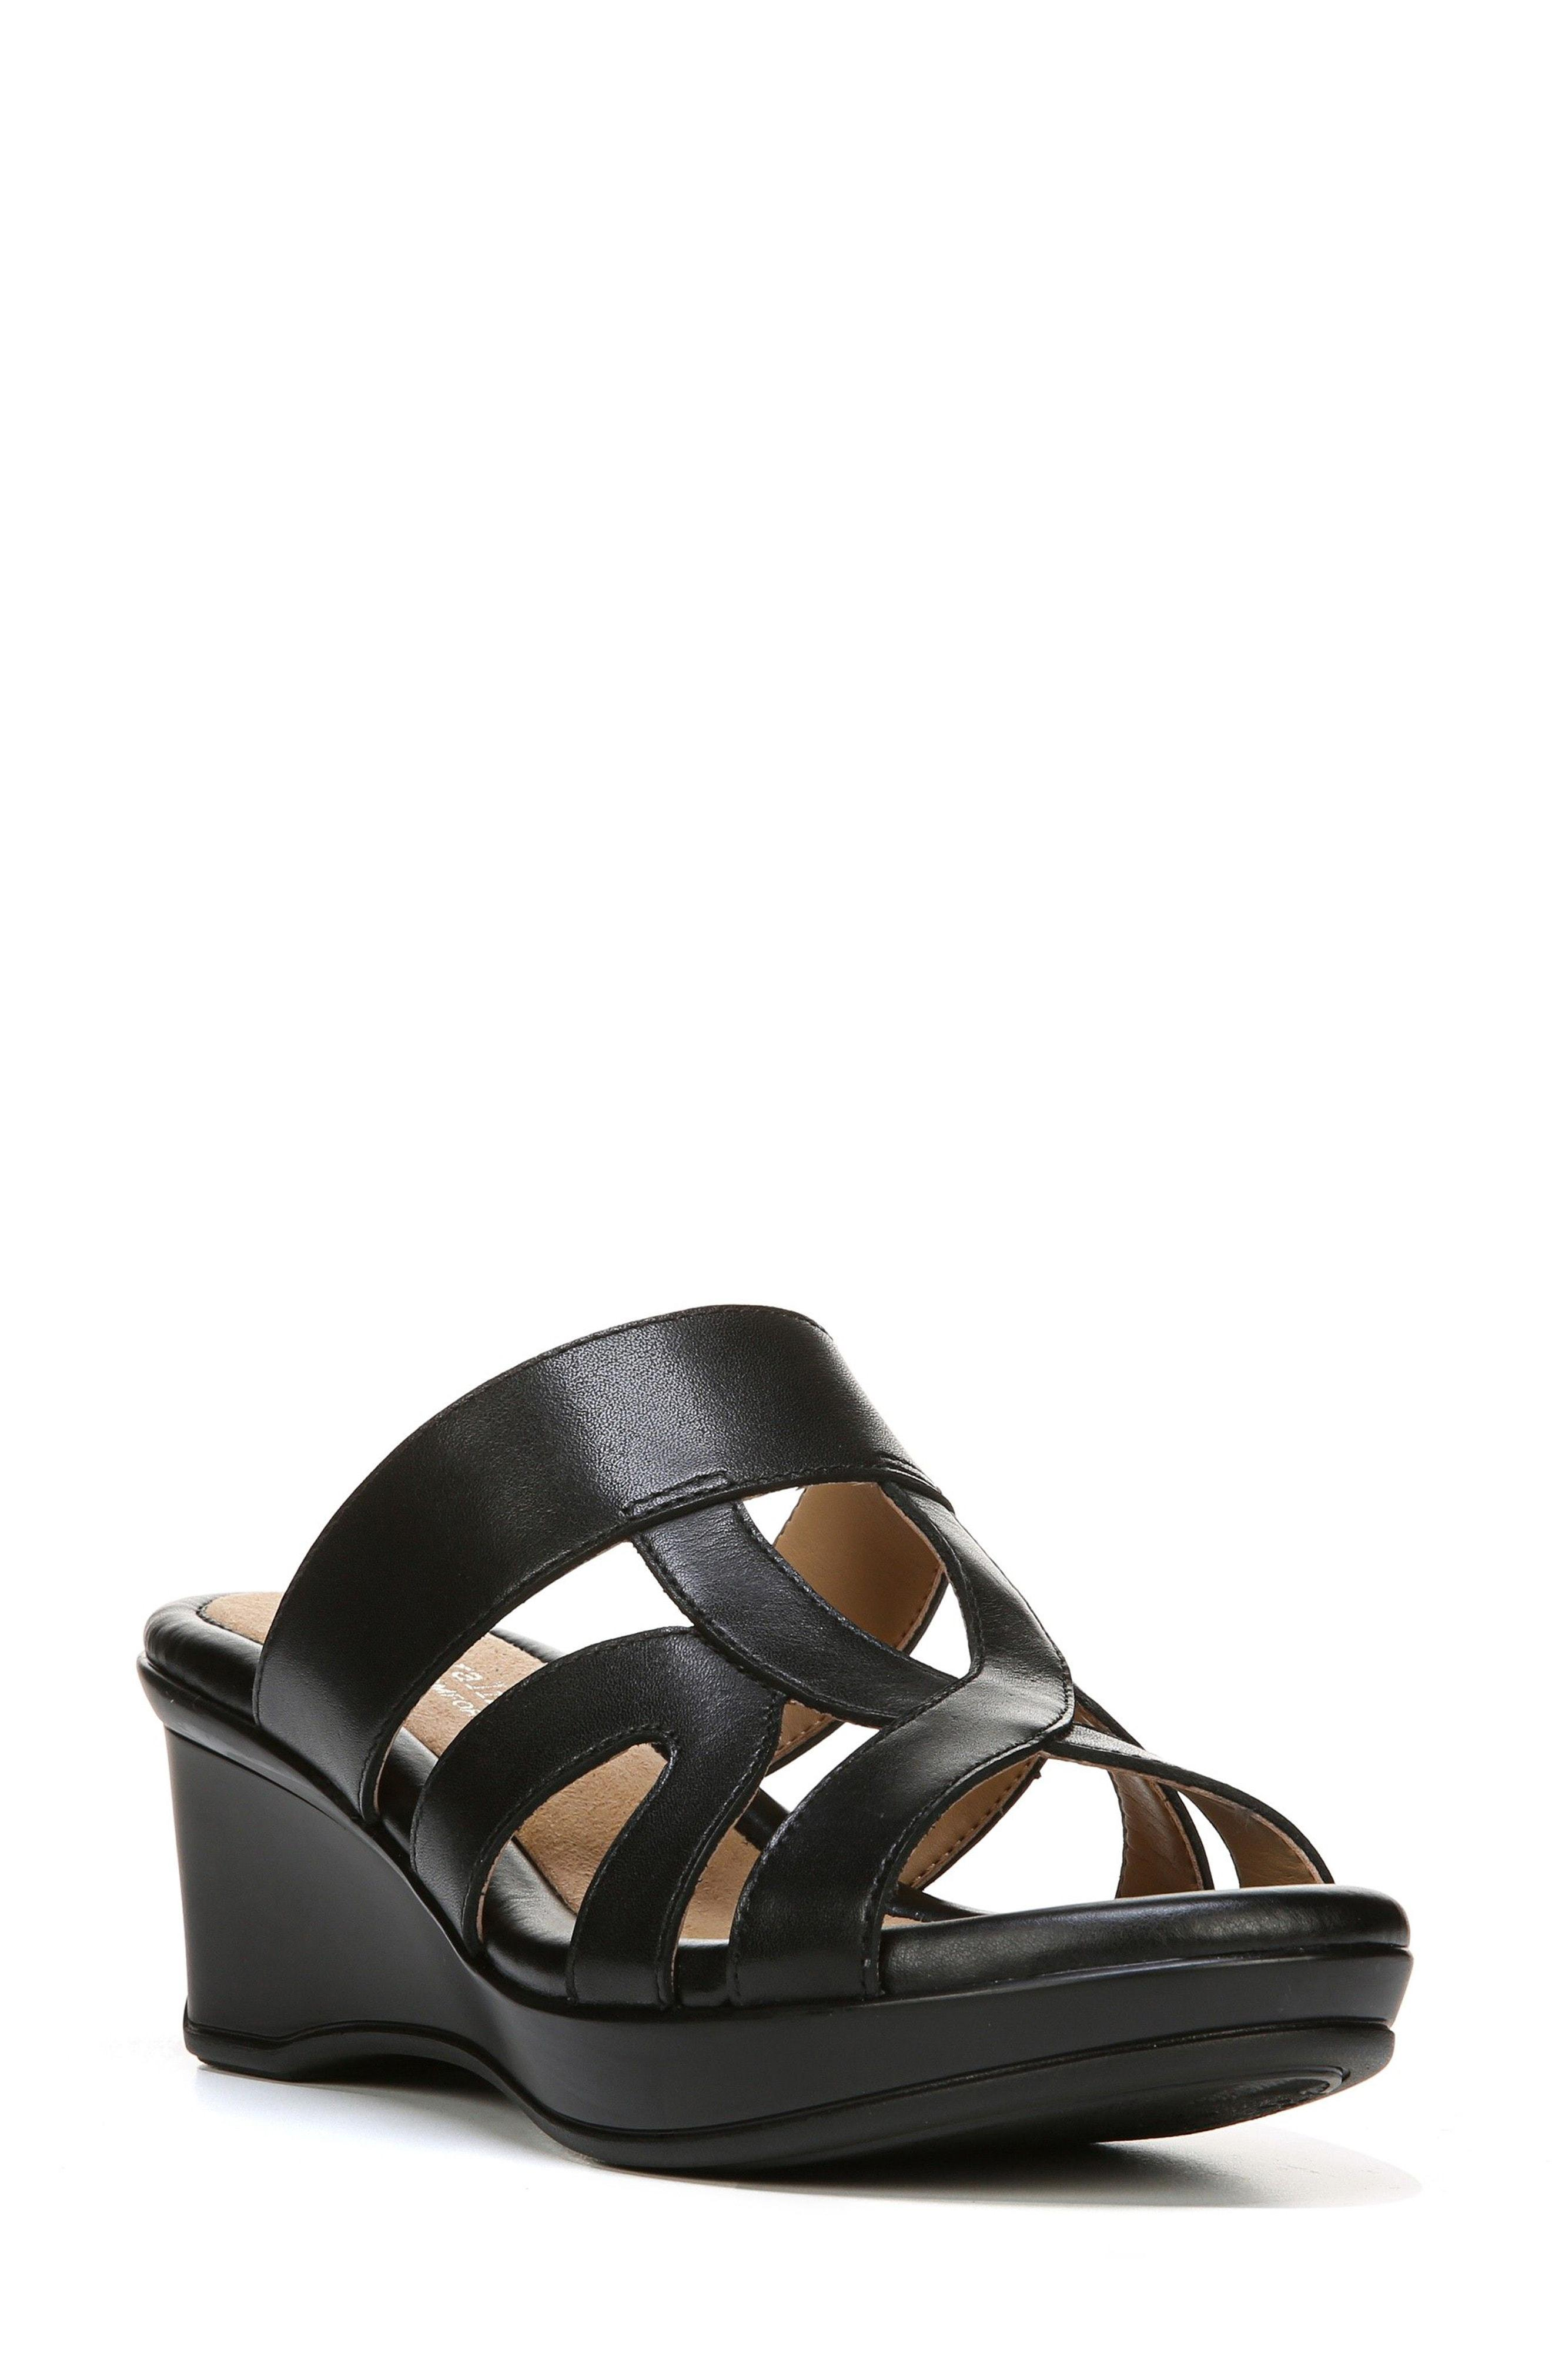 d07a1a8106 Naturalizer Vanity Wedge Sandal in Black - Lyst